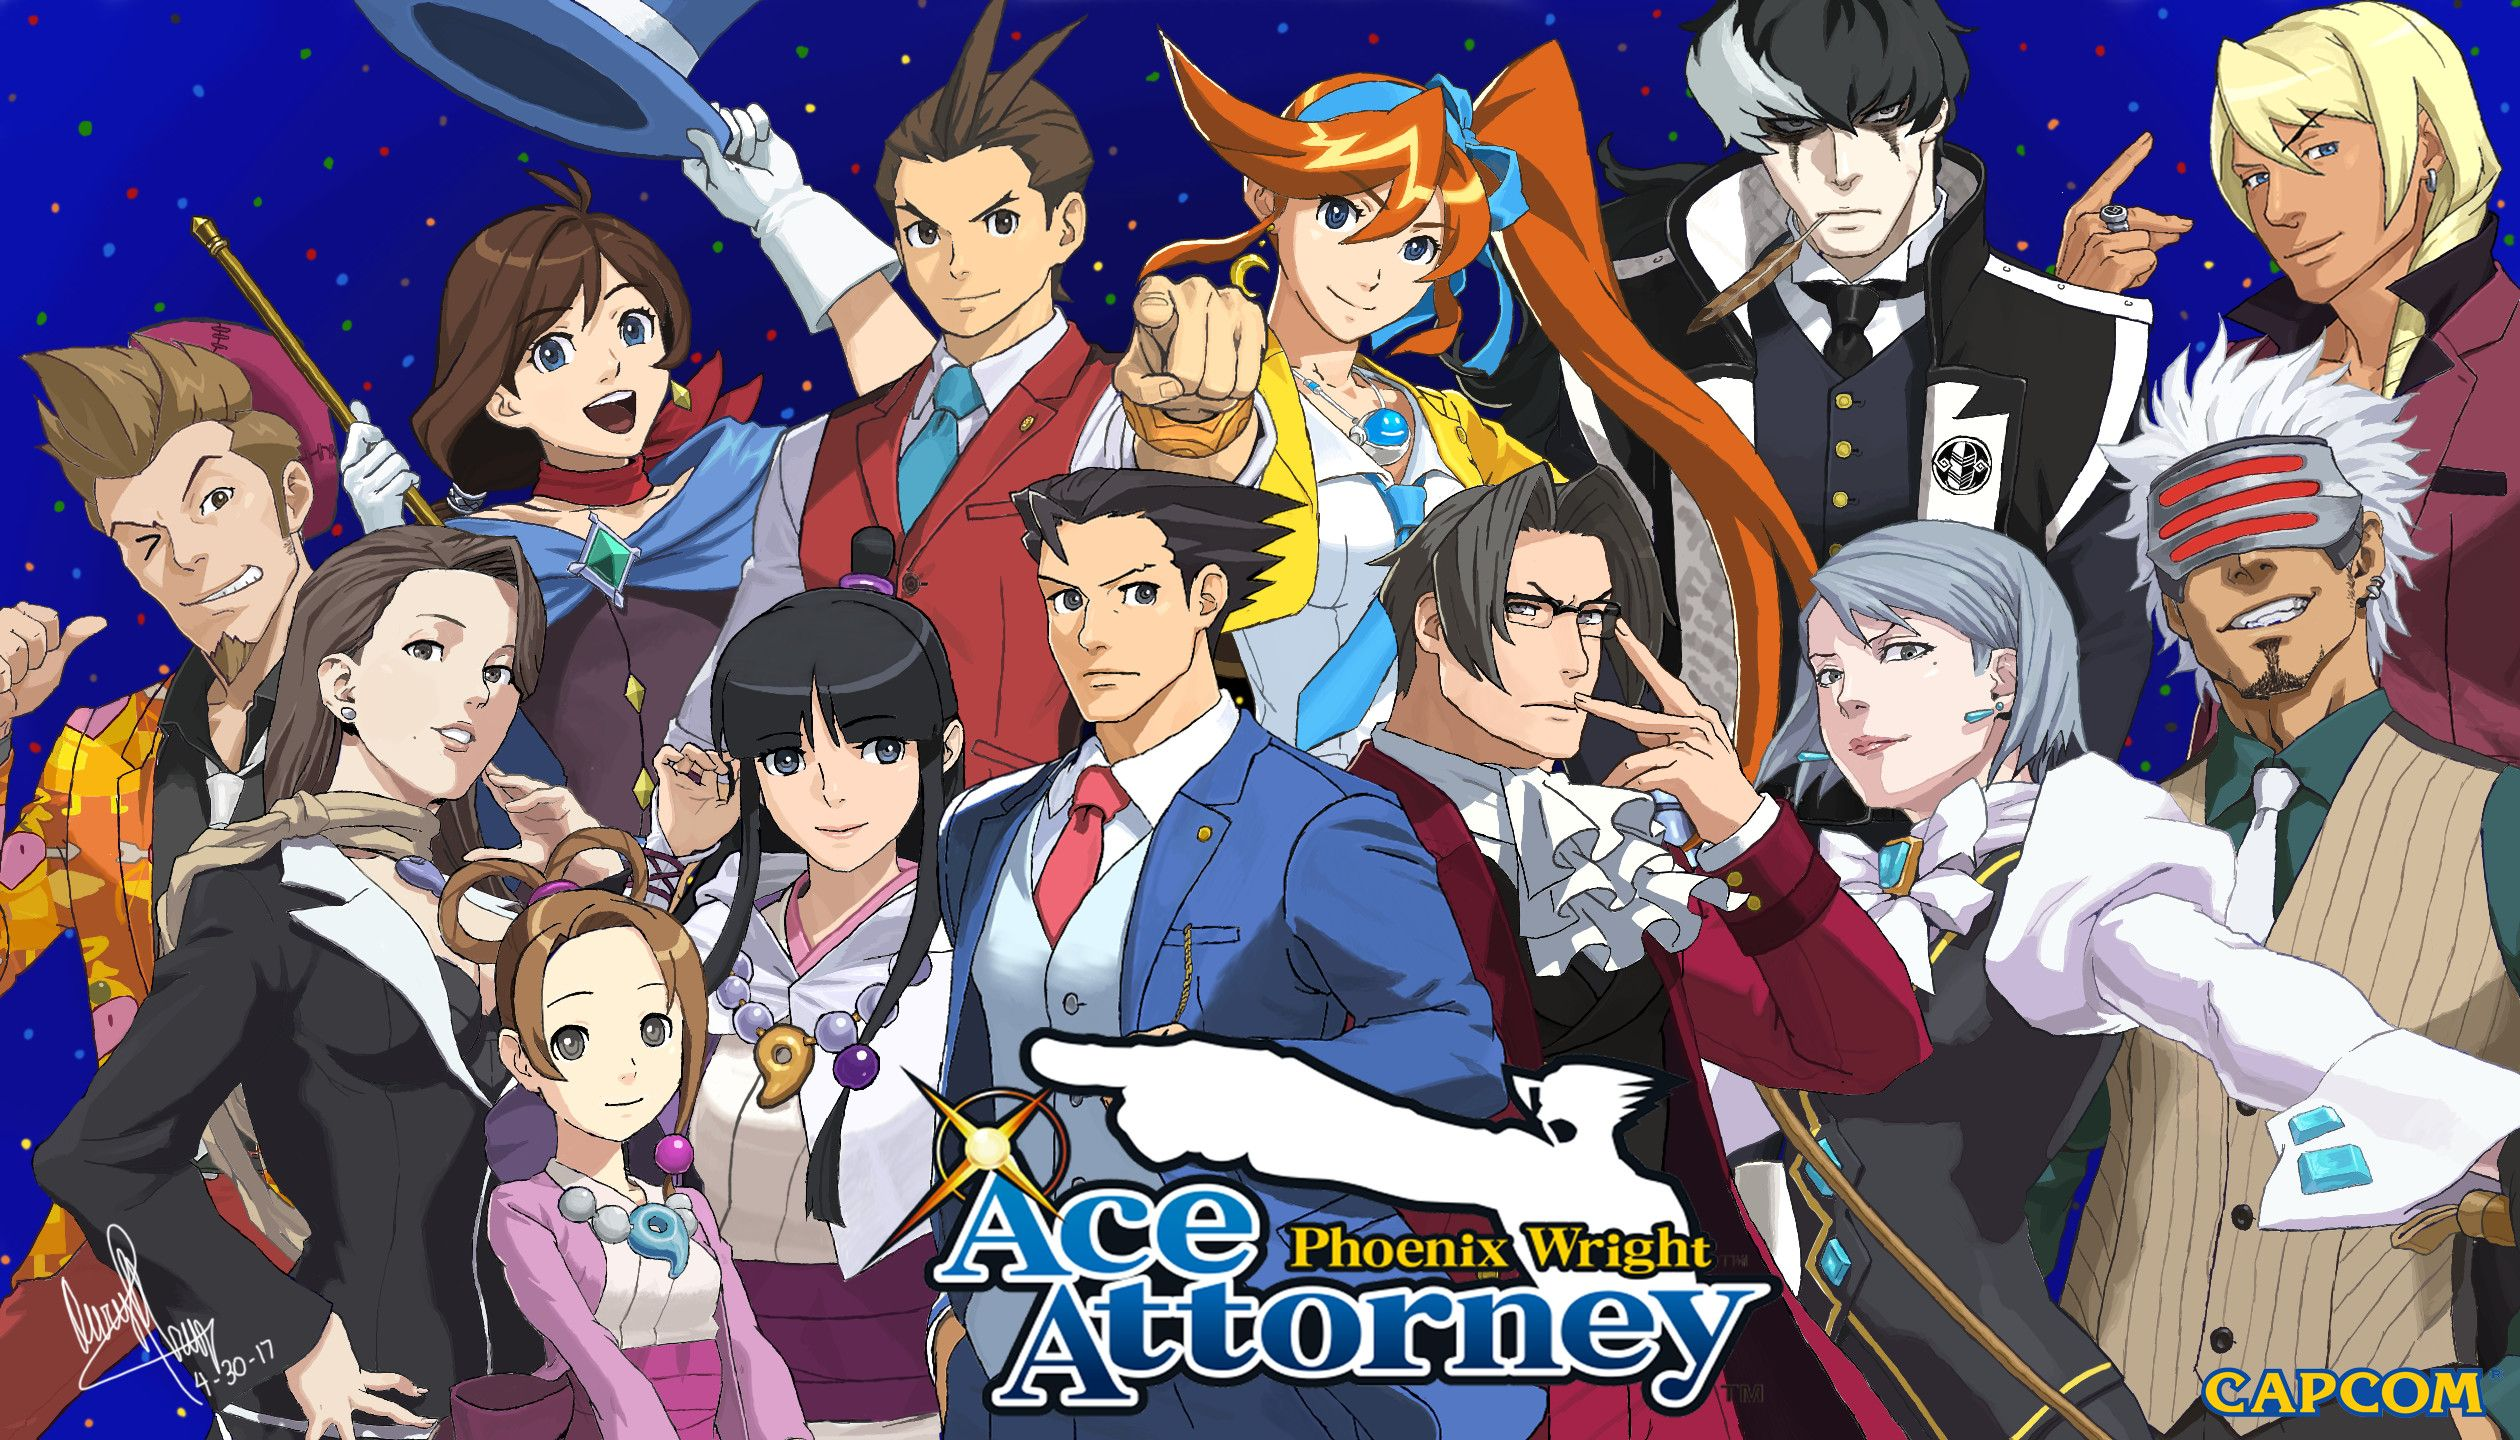 76 Ace Attorney Wallpapers On Wallpaperplay